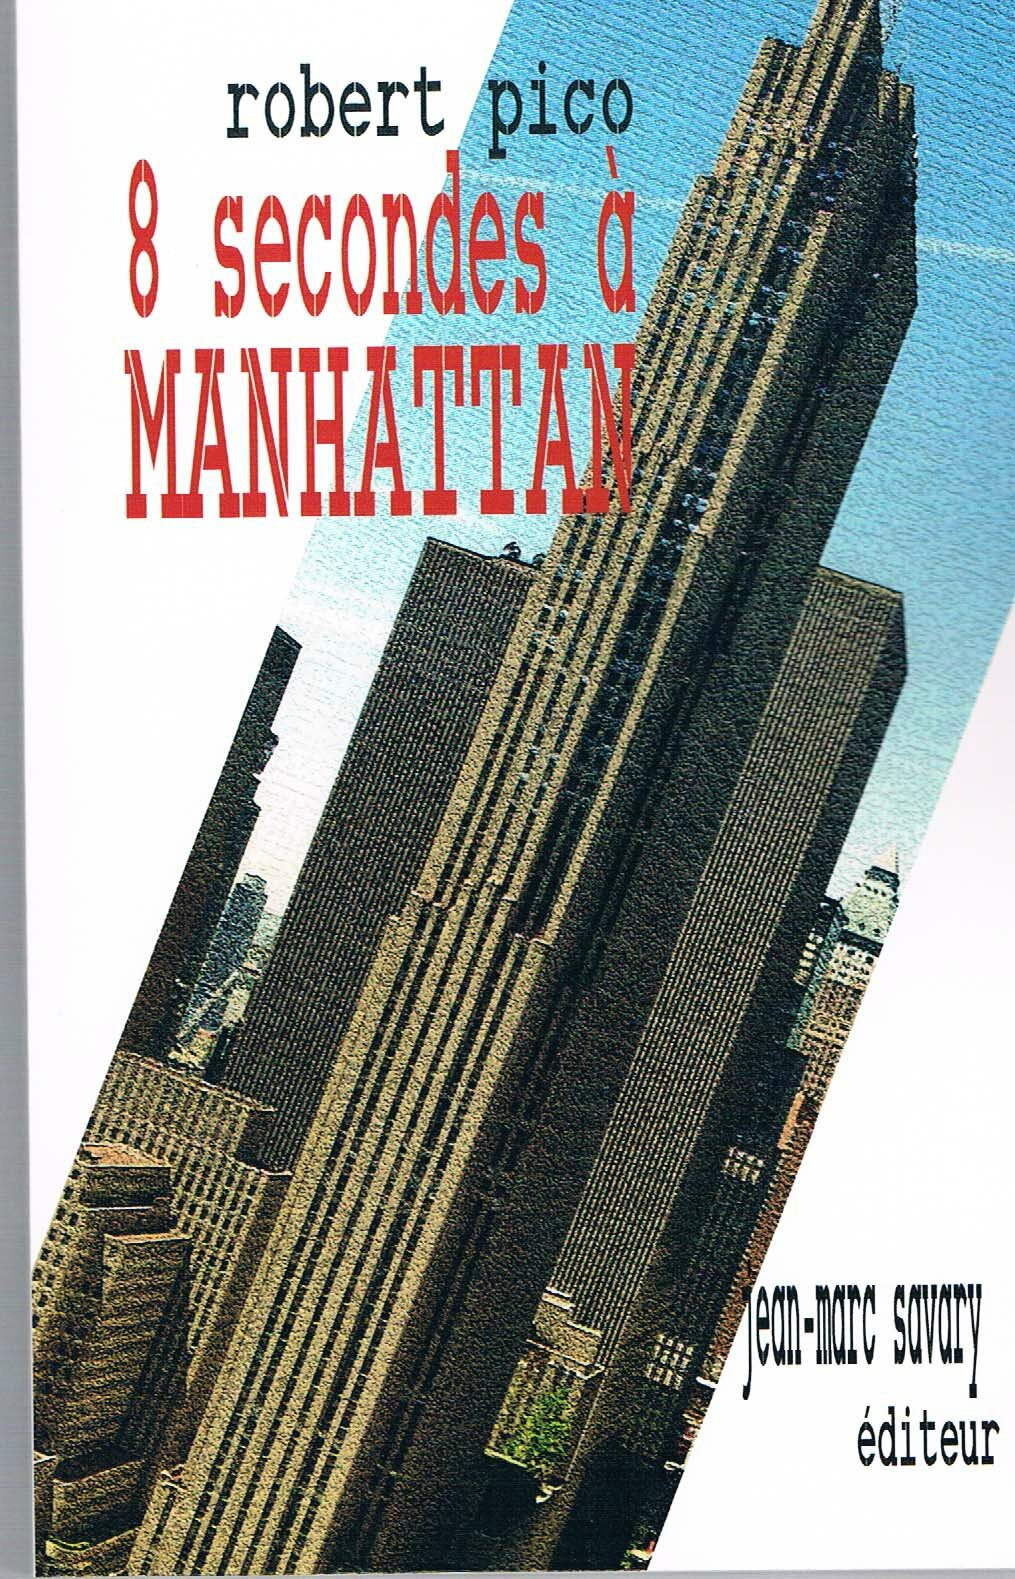 8 secondes à Manhattan